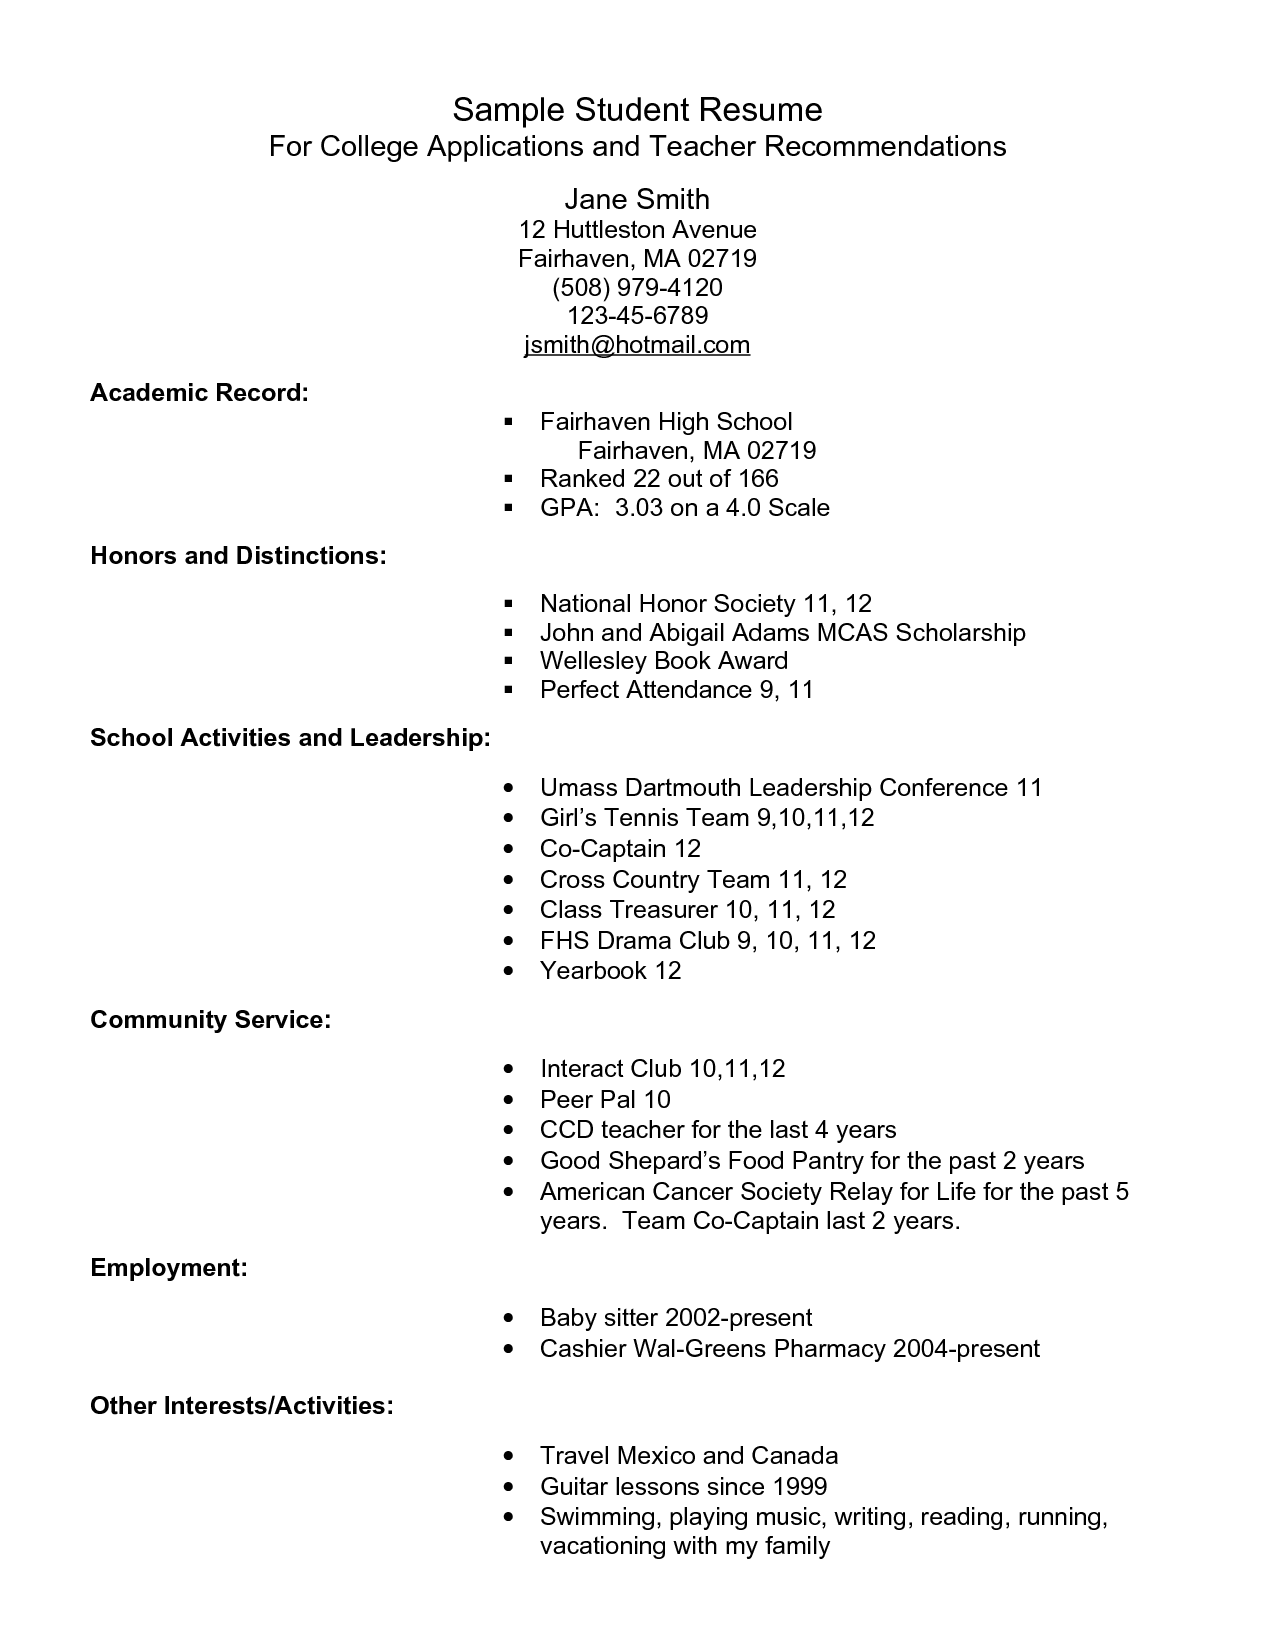 Resume After College Example Resume For High School Students For College Applications